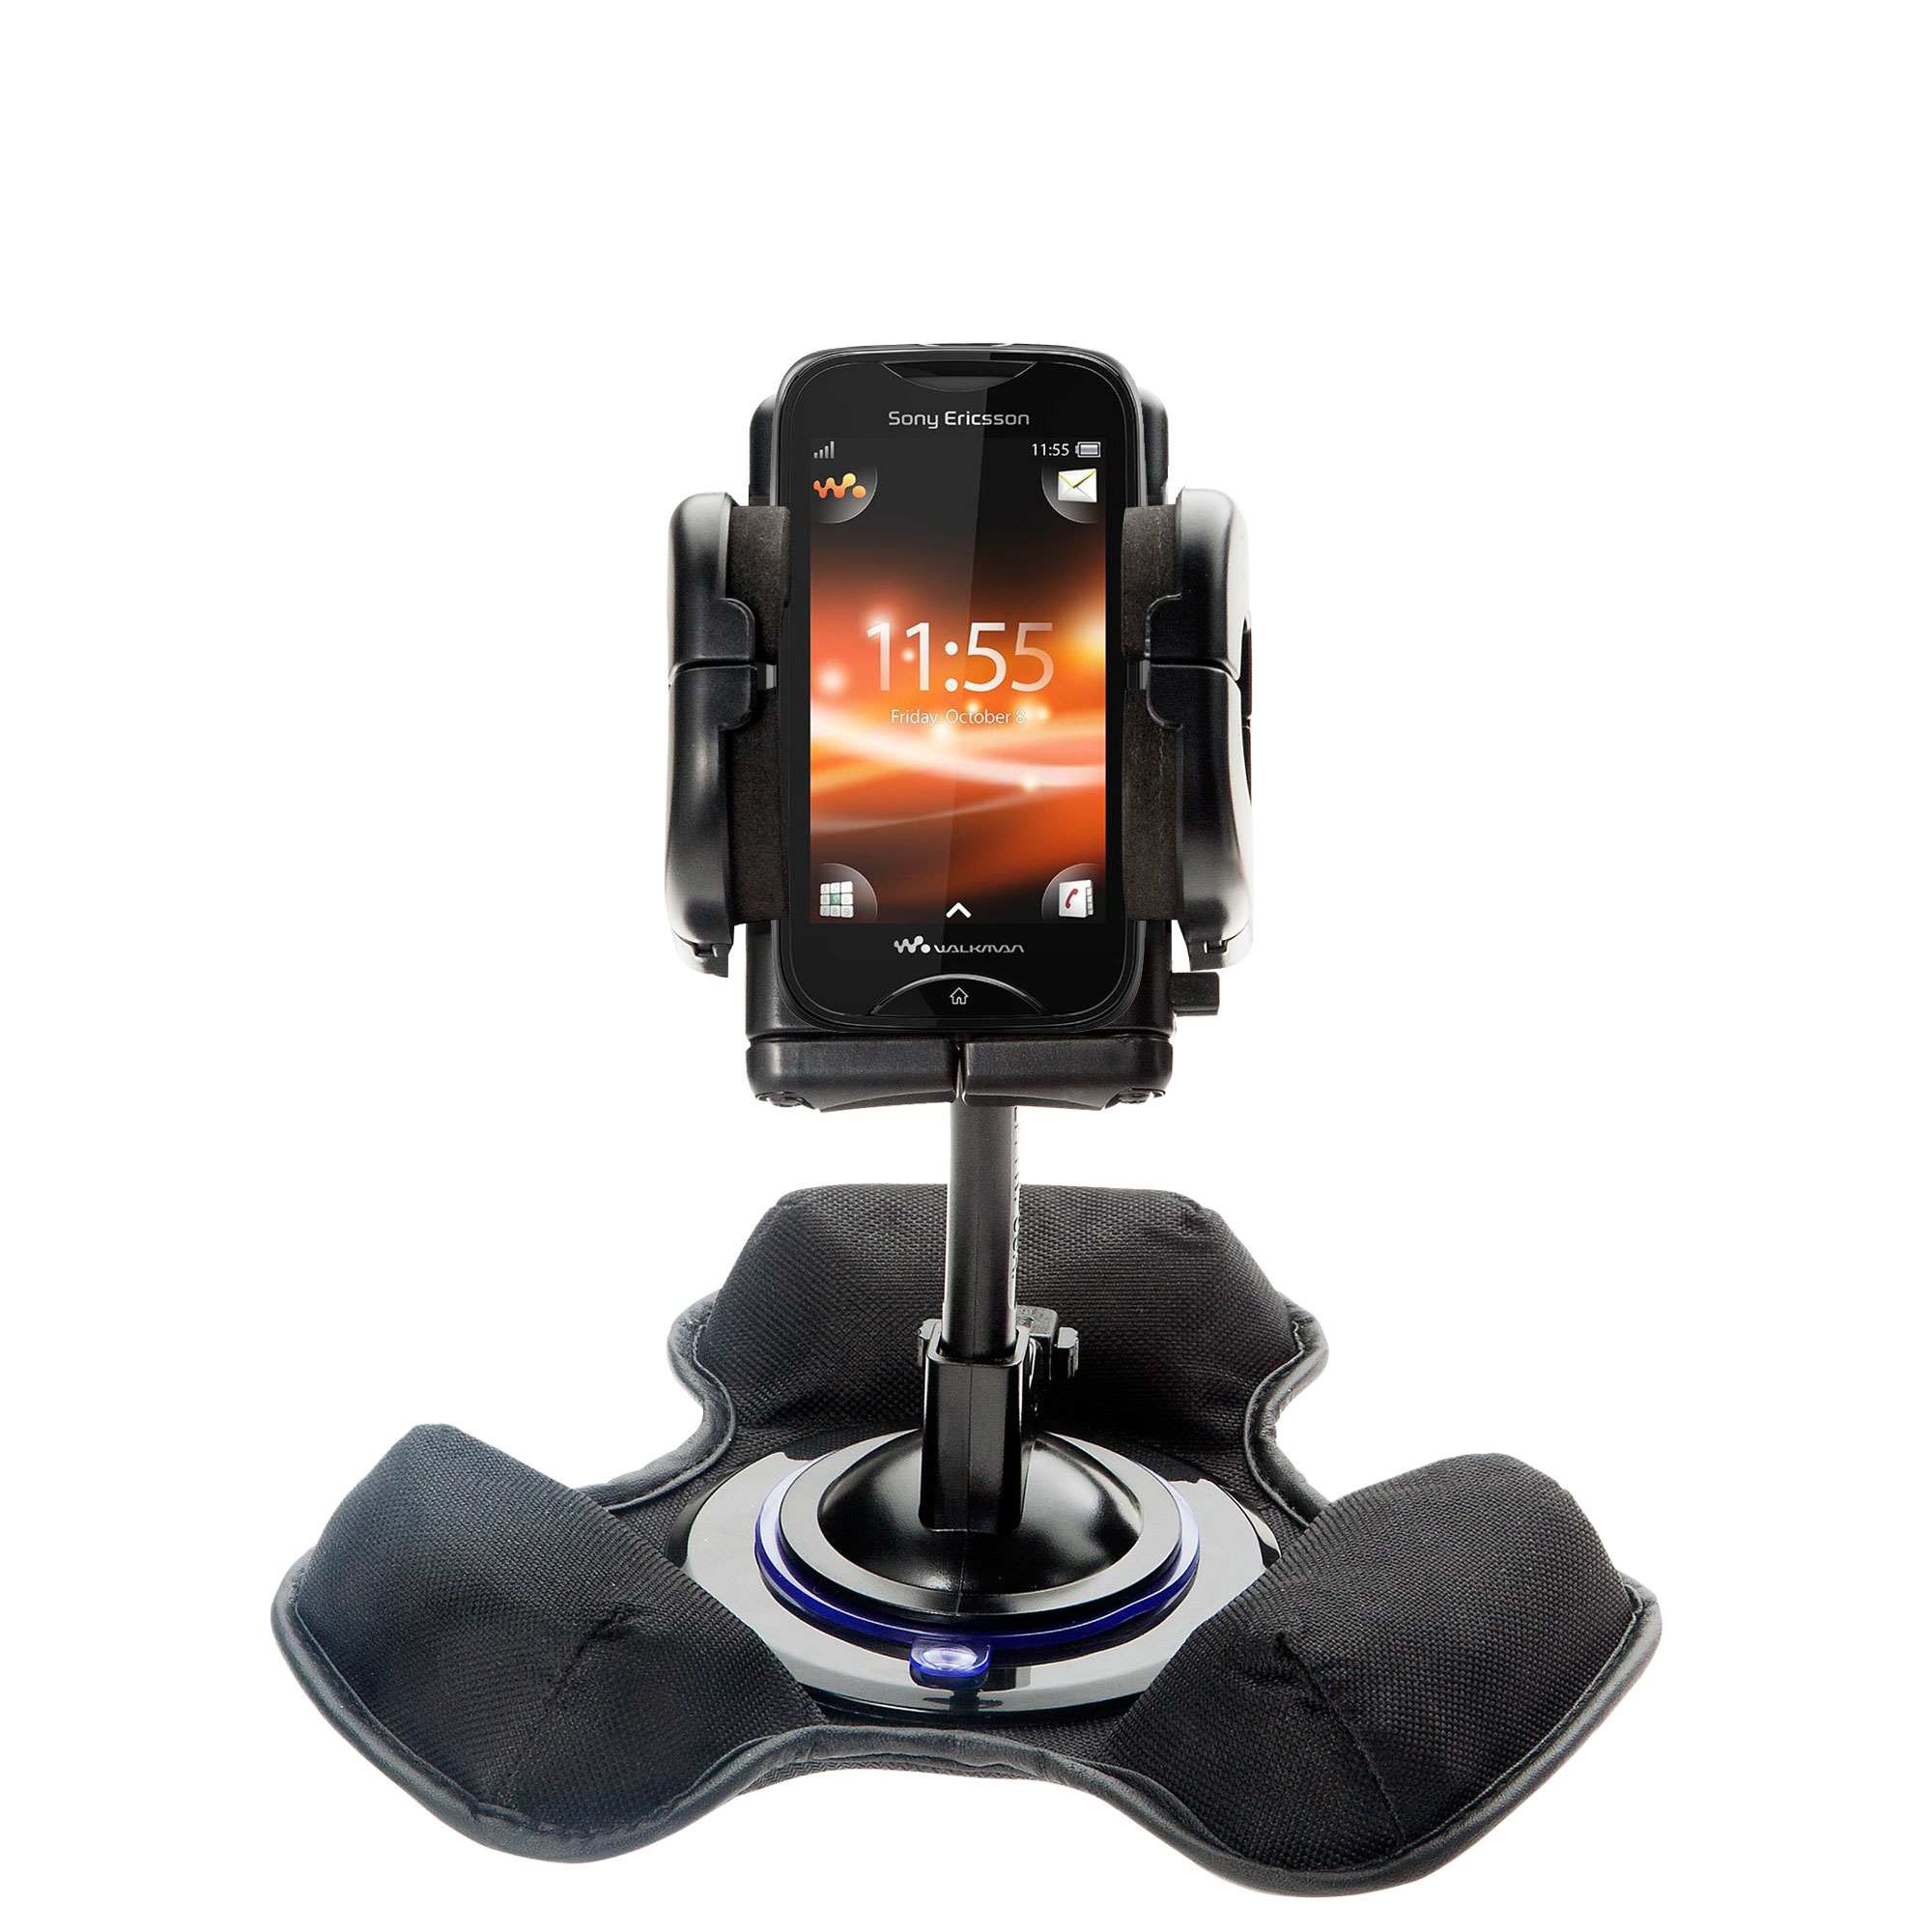 Dash and Windshield Holder compatible with the Sony Ericsson LT15i